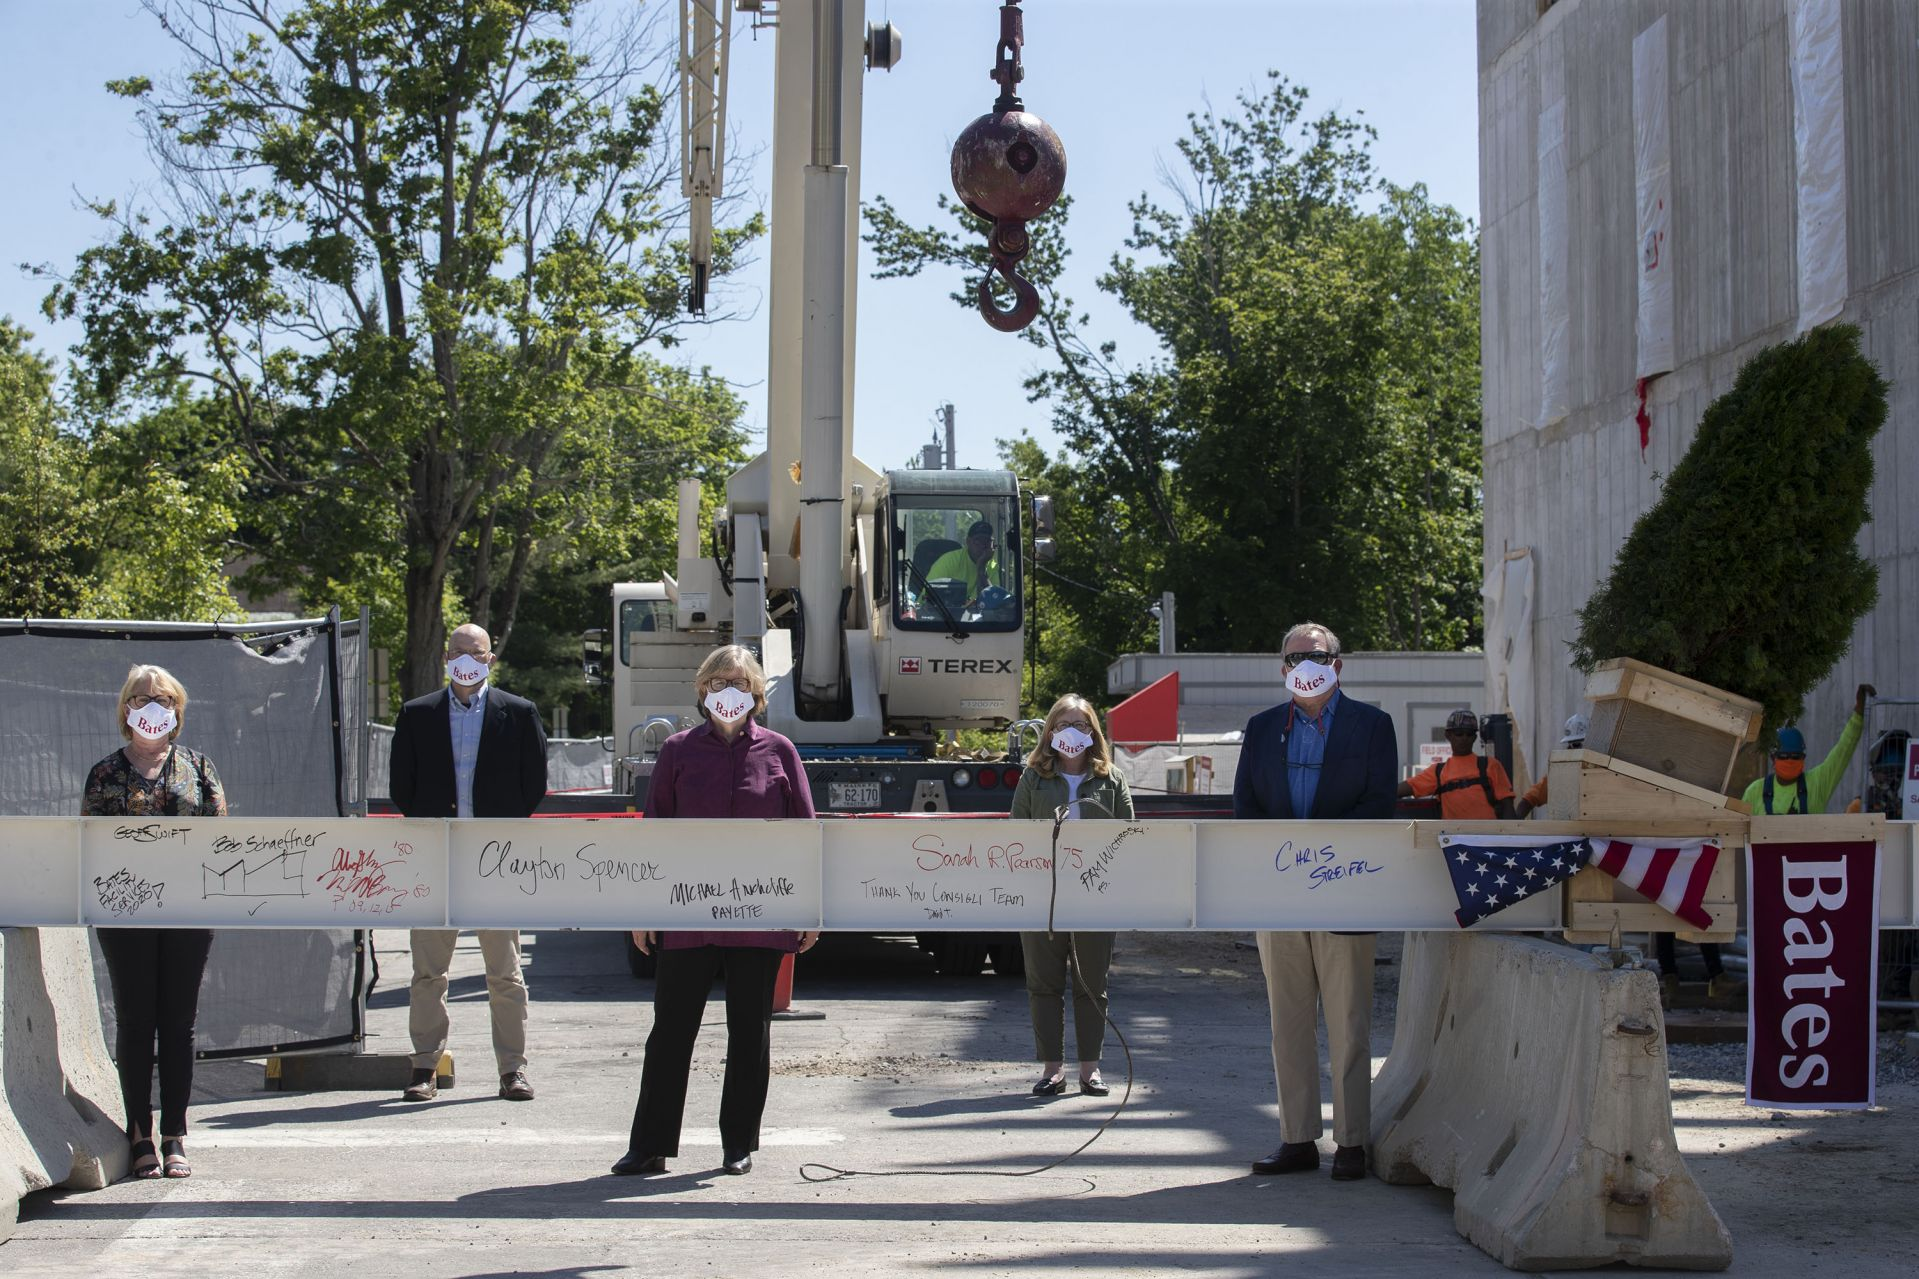 Images from the topping off event on May 16, 2020, at the Bonney Science Center, featuring the final major piece of structural steel being installed on the building. In keeping with tradition, a small spruce tree was attached to the beam fluttered plus a Bates banner and the American flag. The beam has the signatures of Bates participants and members of the Consigli construction crew.  Participants: Michael W. Bonney '80, P'09, P'12, P'15 Alison Grott Bonney '80, P'09, P'12, P'15 Sarah R. Pearson '75, Vice President for College Advancement A. Clayton Spencer, President Chris Streifel, Facilities Services Project Manager Geoff Swift, Vice President for Finance and Administration and Treasurer Pam Wichroski, Director of Capital Planning and Construction Dave Thomas, Consigli Construction  Michael Hinchcliffe, Payette Architecture Firm  Bob Schaeffner, Payette Architecture Firm